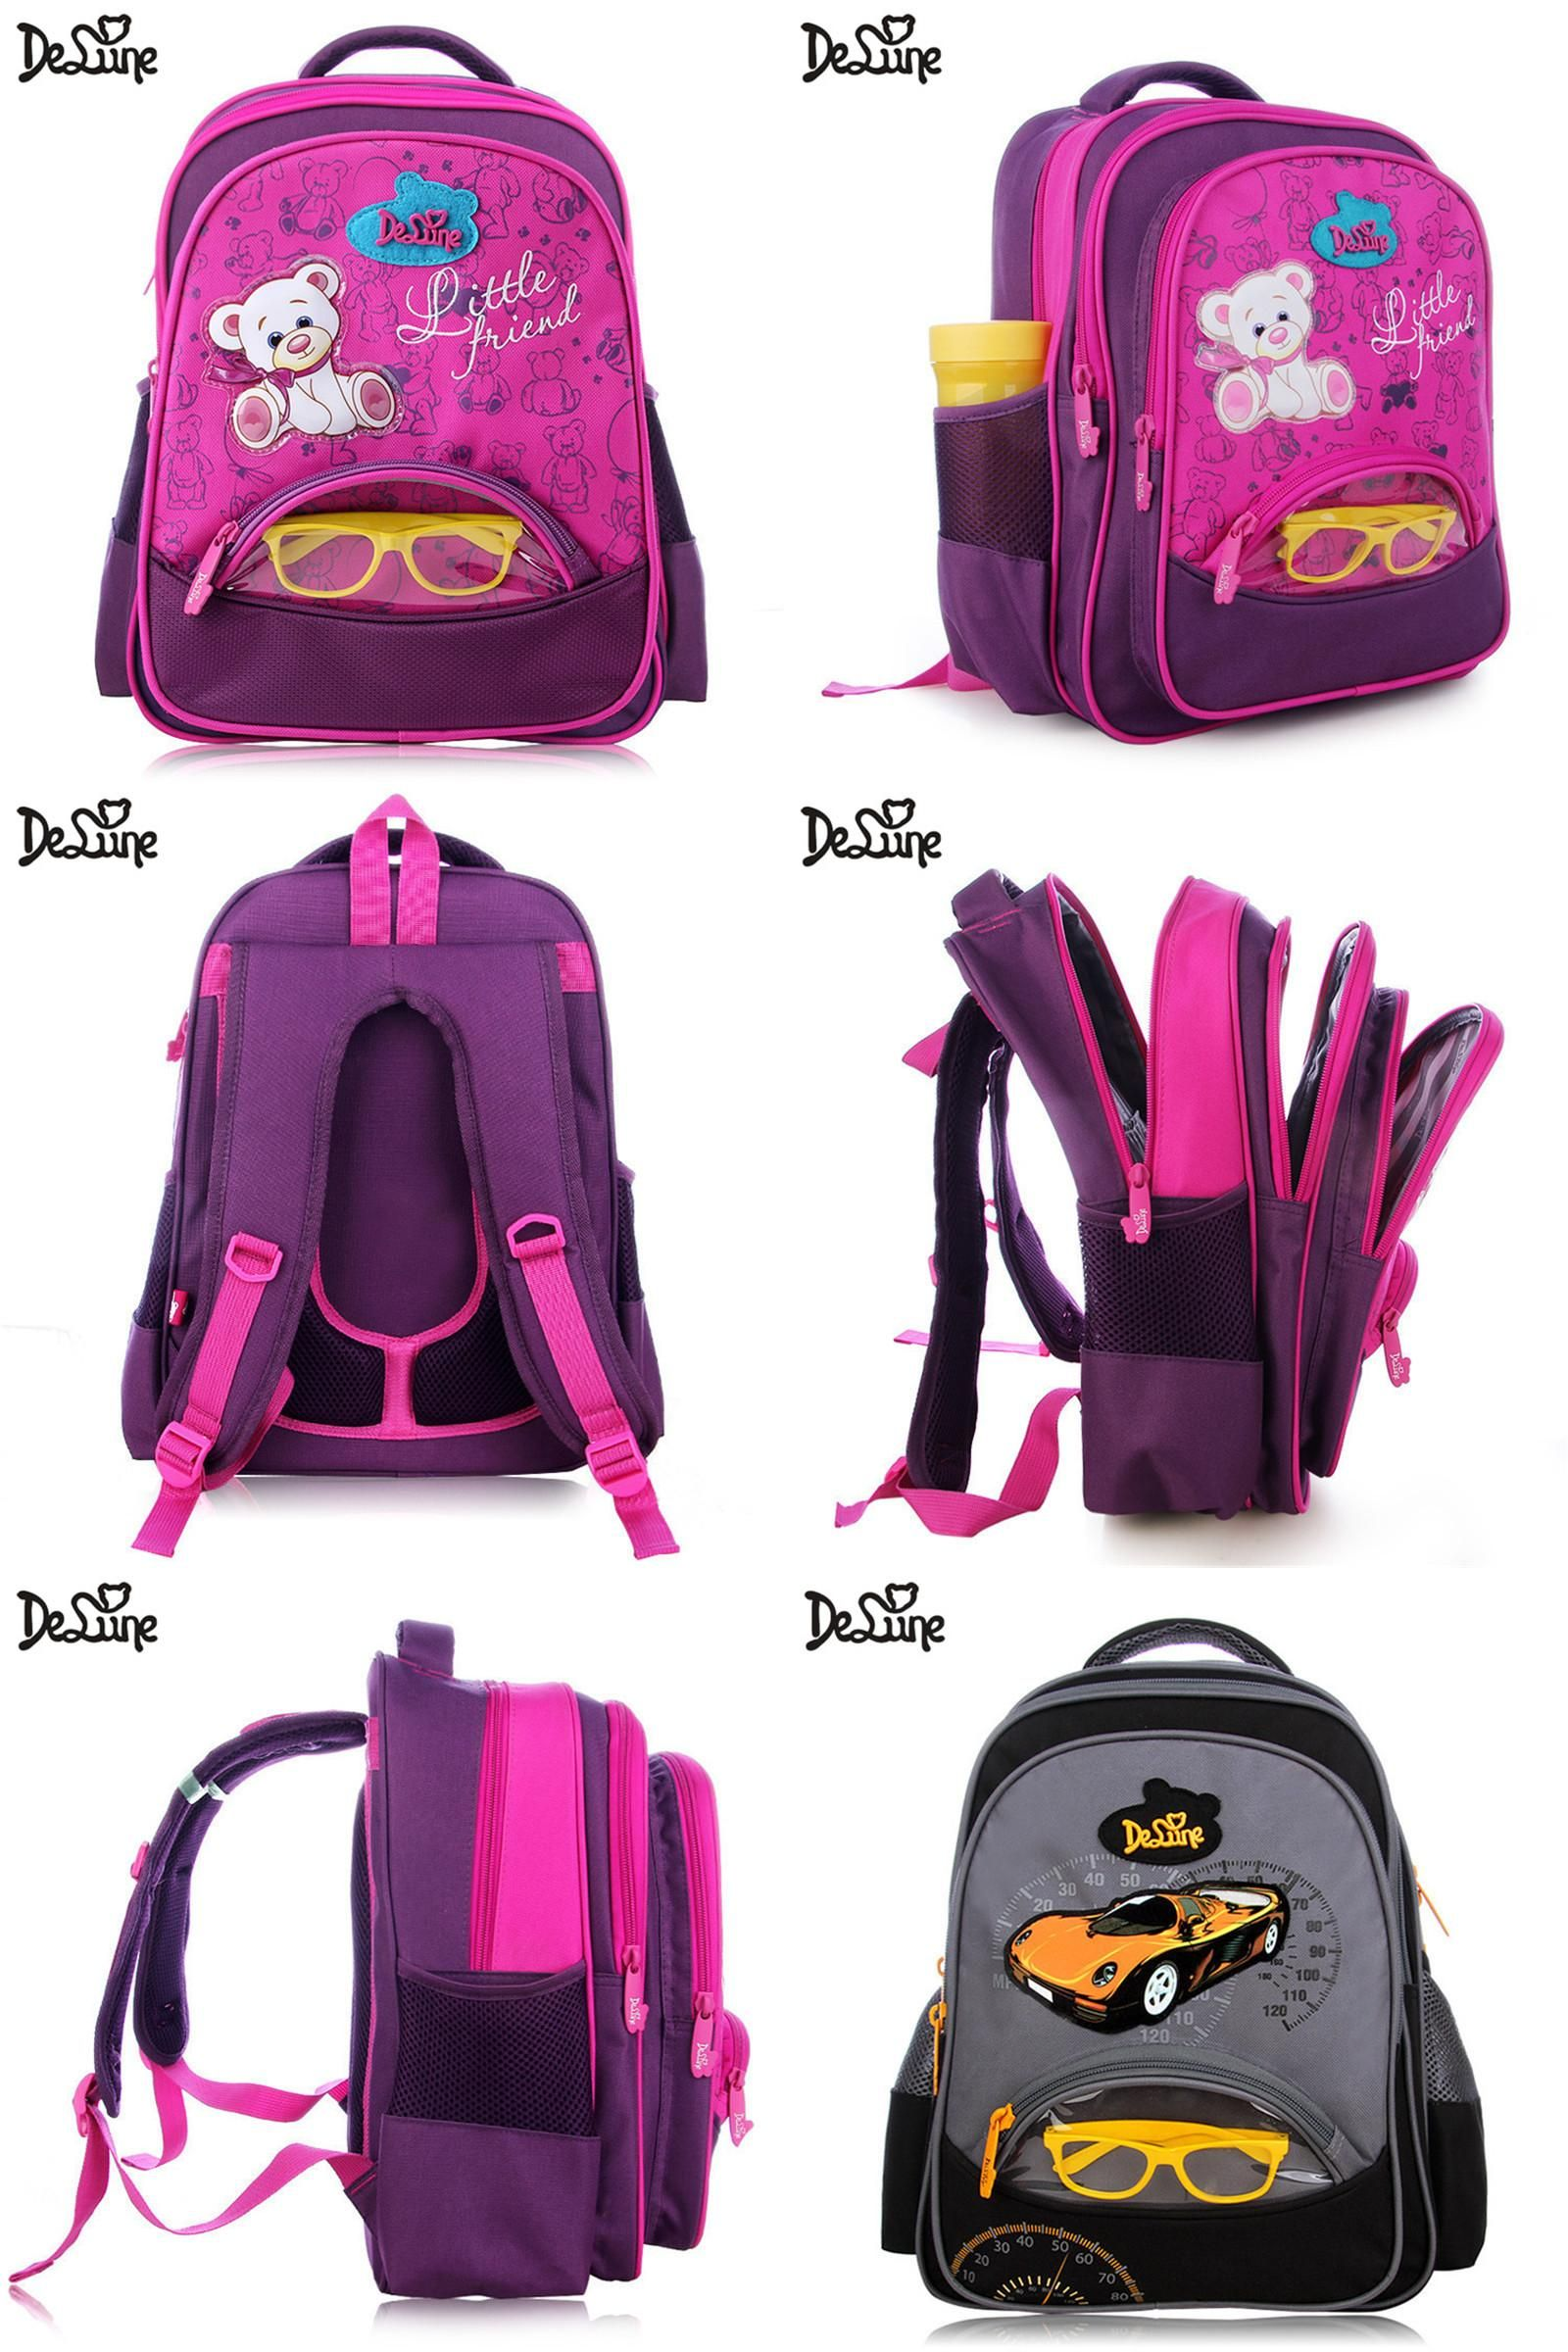 Visit to Buy  Delune famous brand DA series 5-8 years old girls boys ... 1030b66d1243